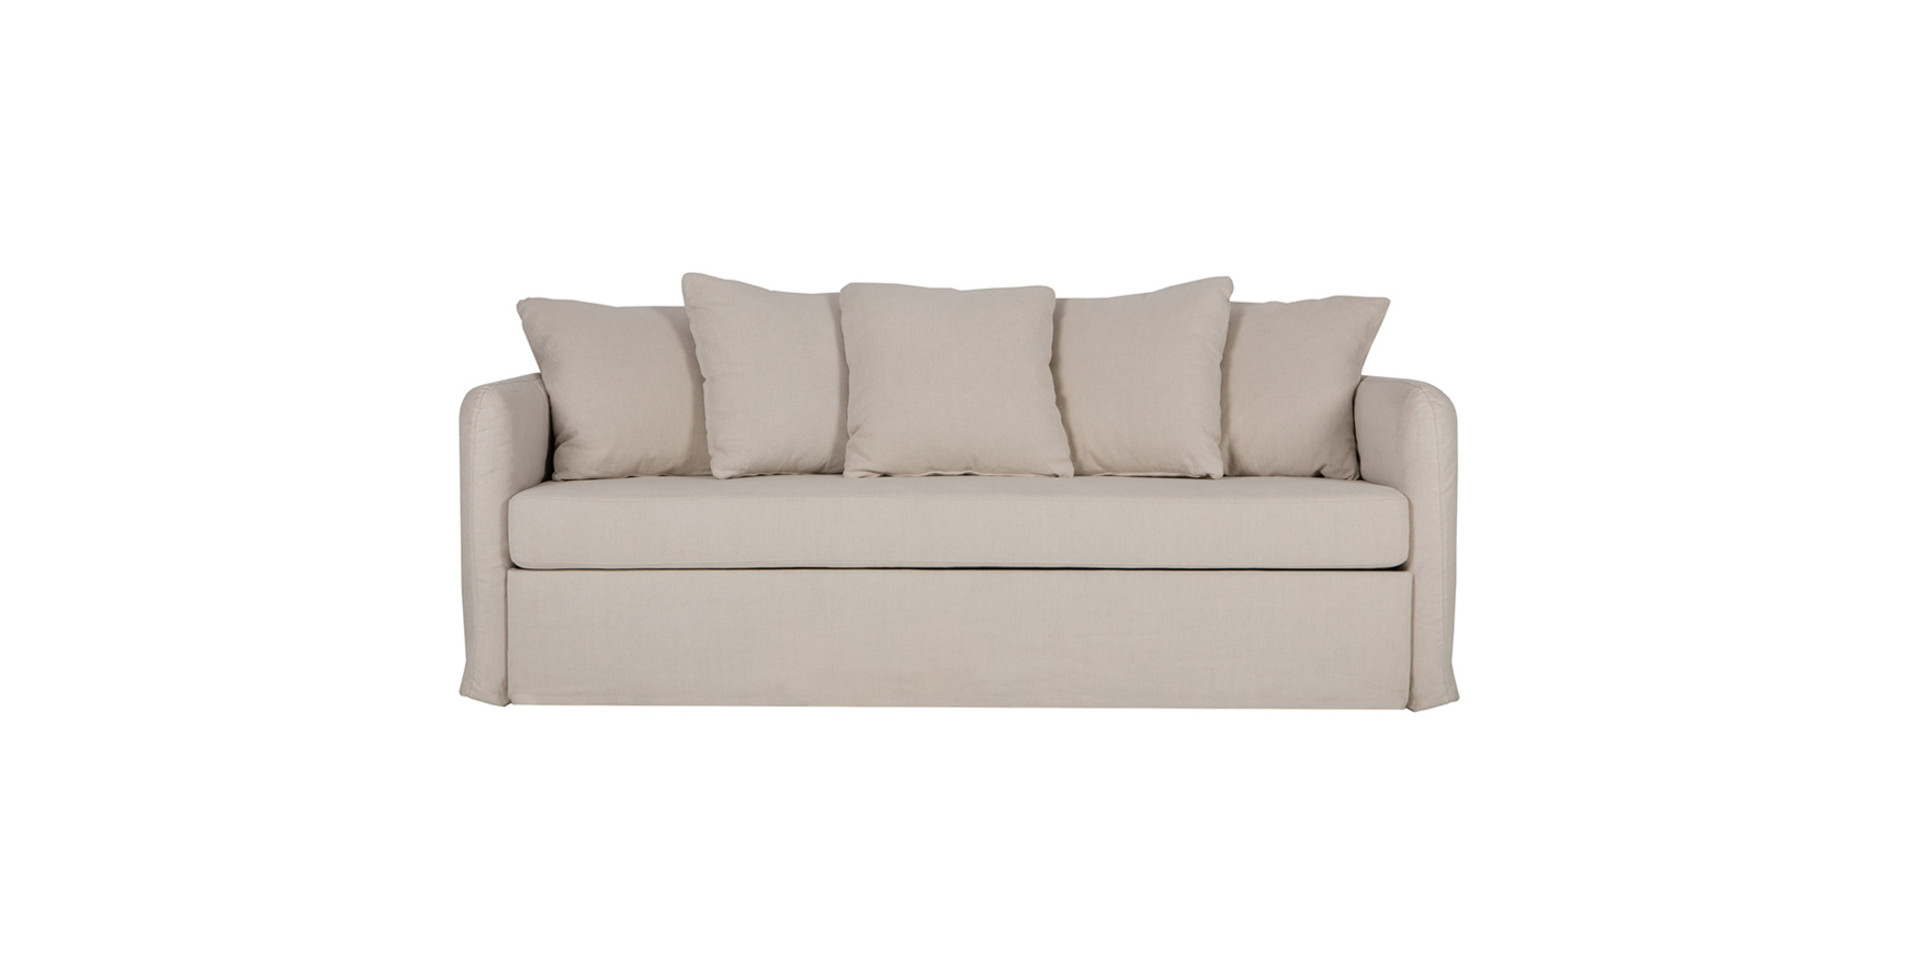 LOTTA_sofa_bed_caleido3790_beige_1